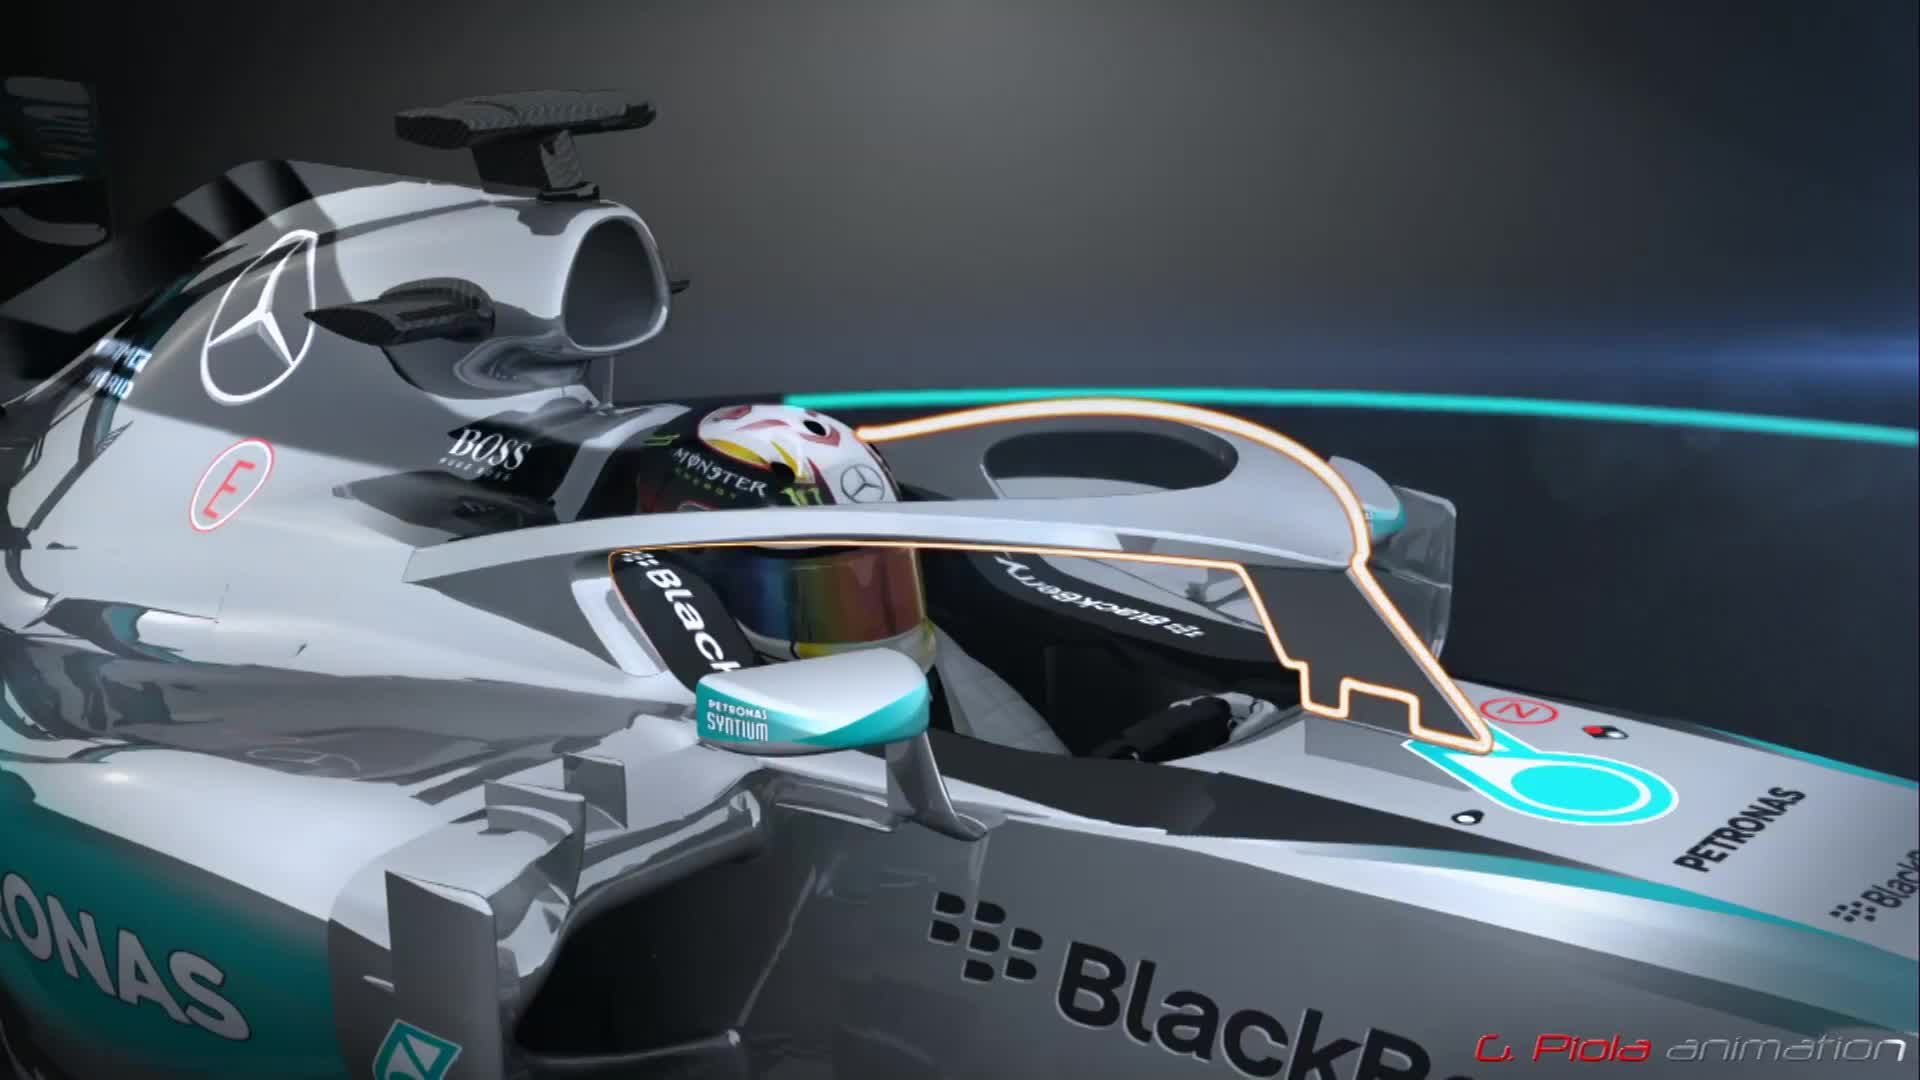 This is what the cockpit halo will look like.